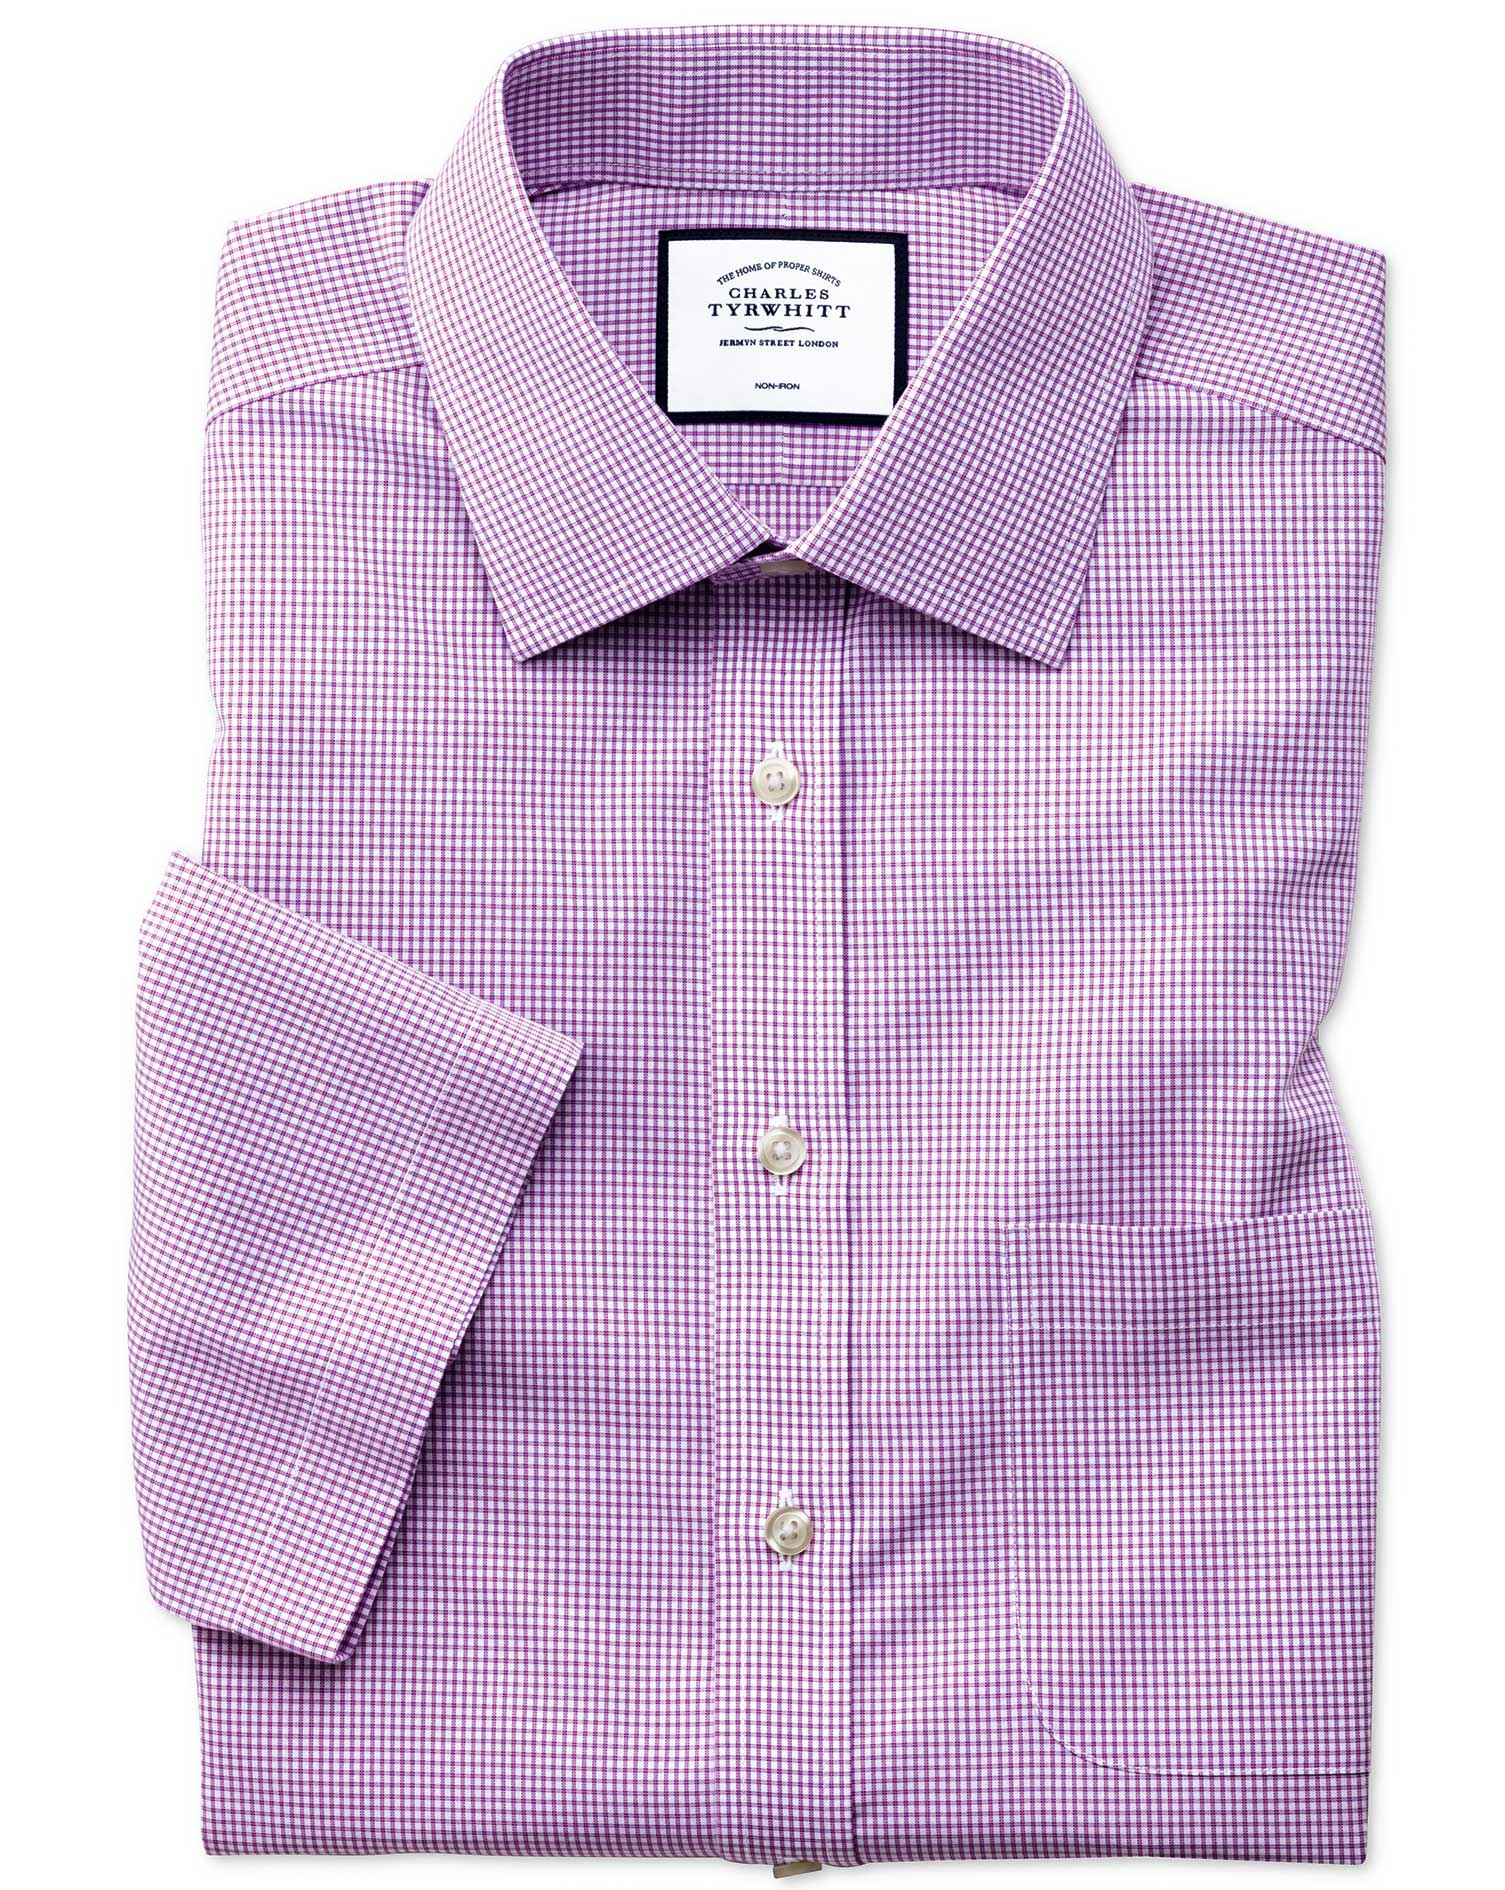 Slim Fit Non-Iron Natural Cool Short Sleeve Pink Check Cotton Formal Shirt Size 15/Short by Charles